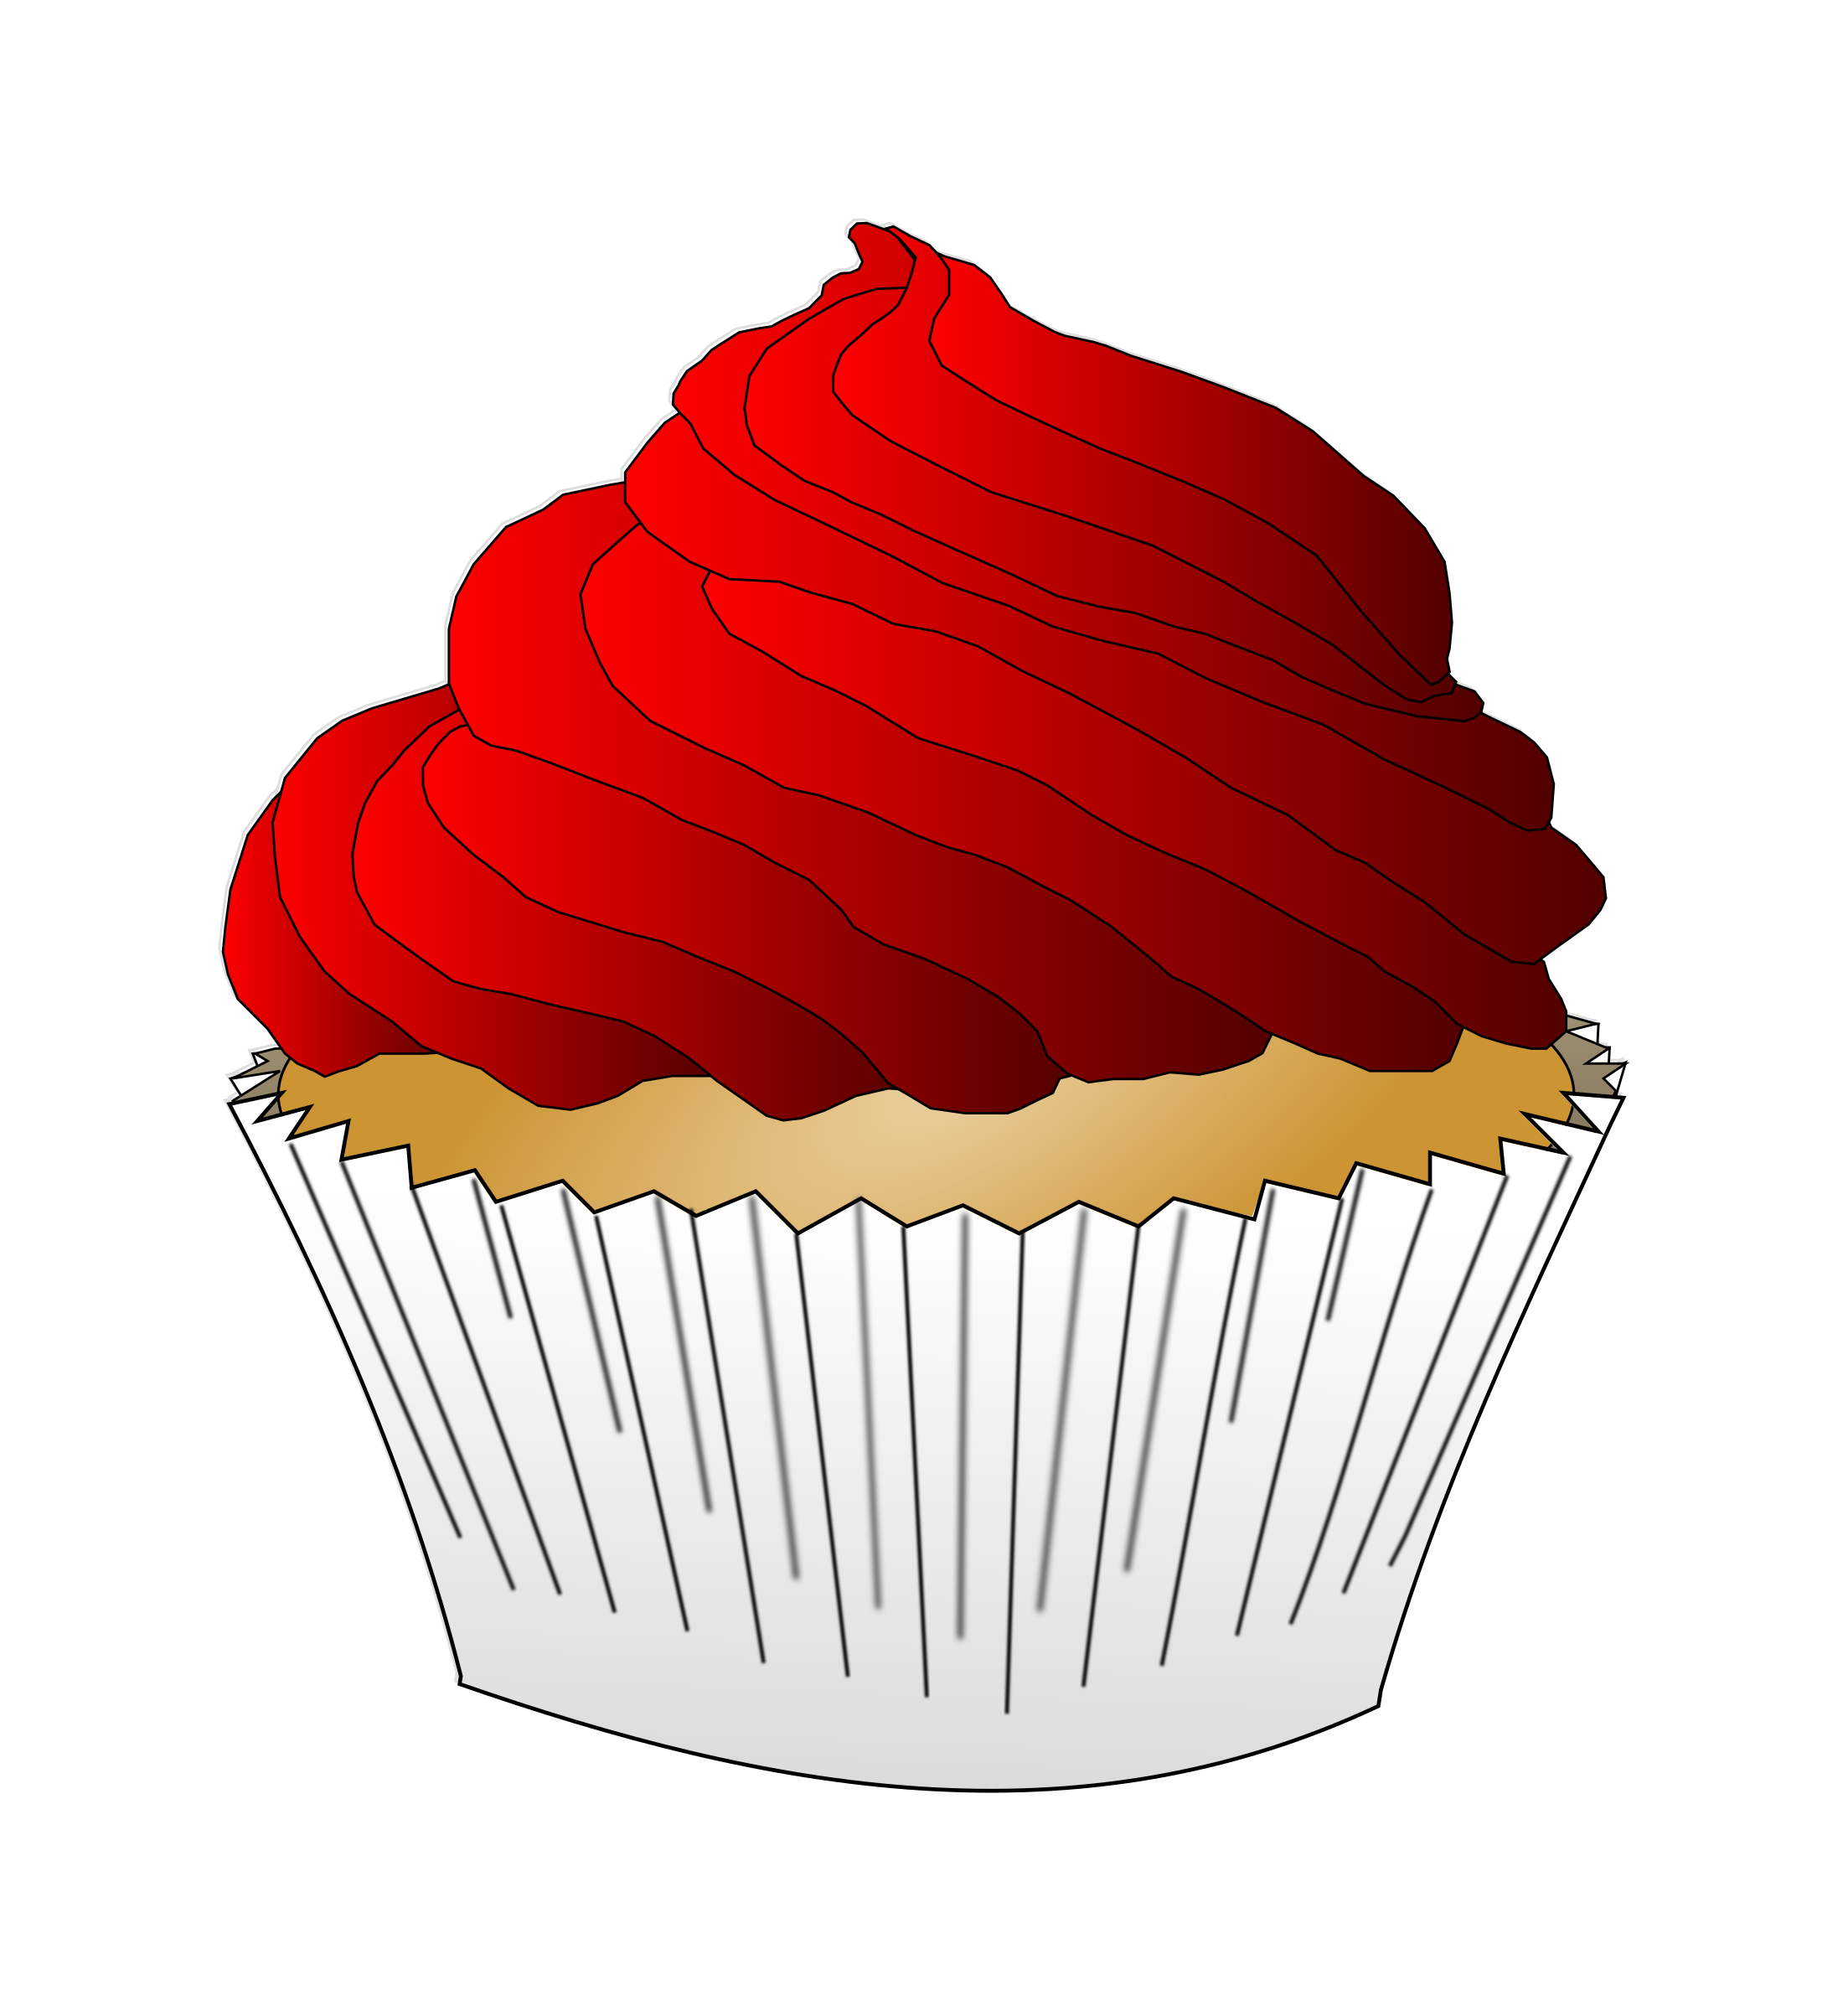 Cupcake clipart pdf. Red frosting icons png